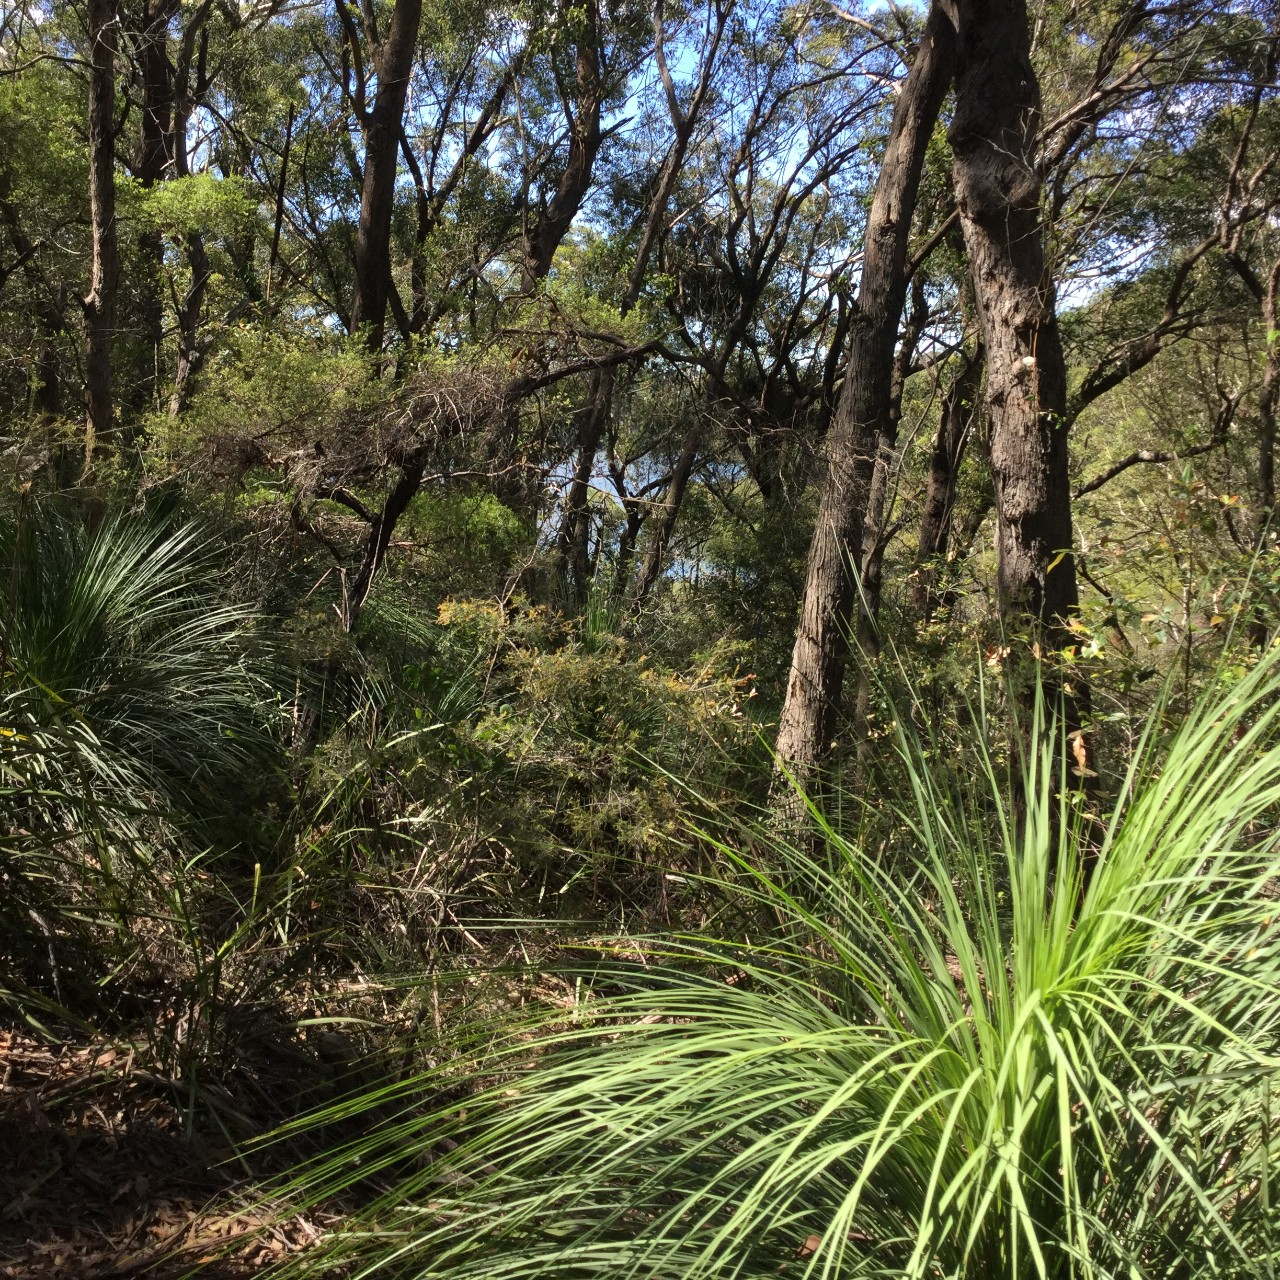 bushland photo with grass tree and gum trees